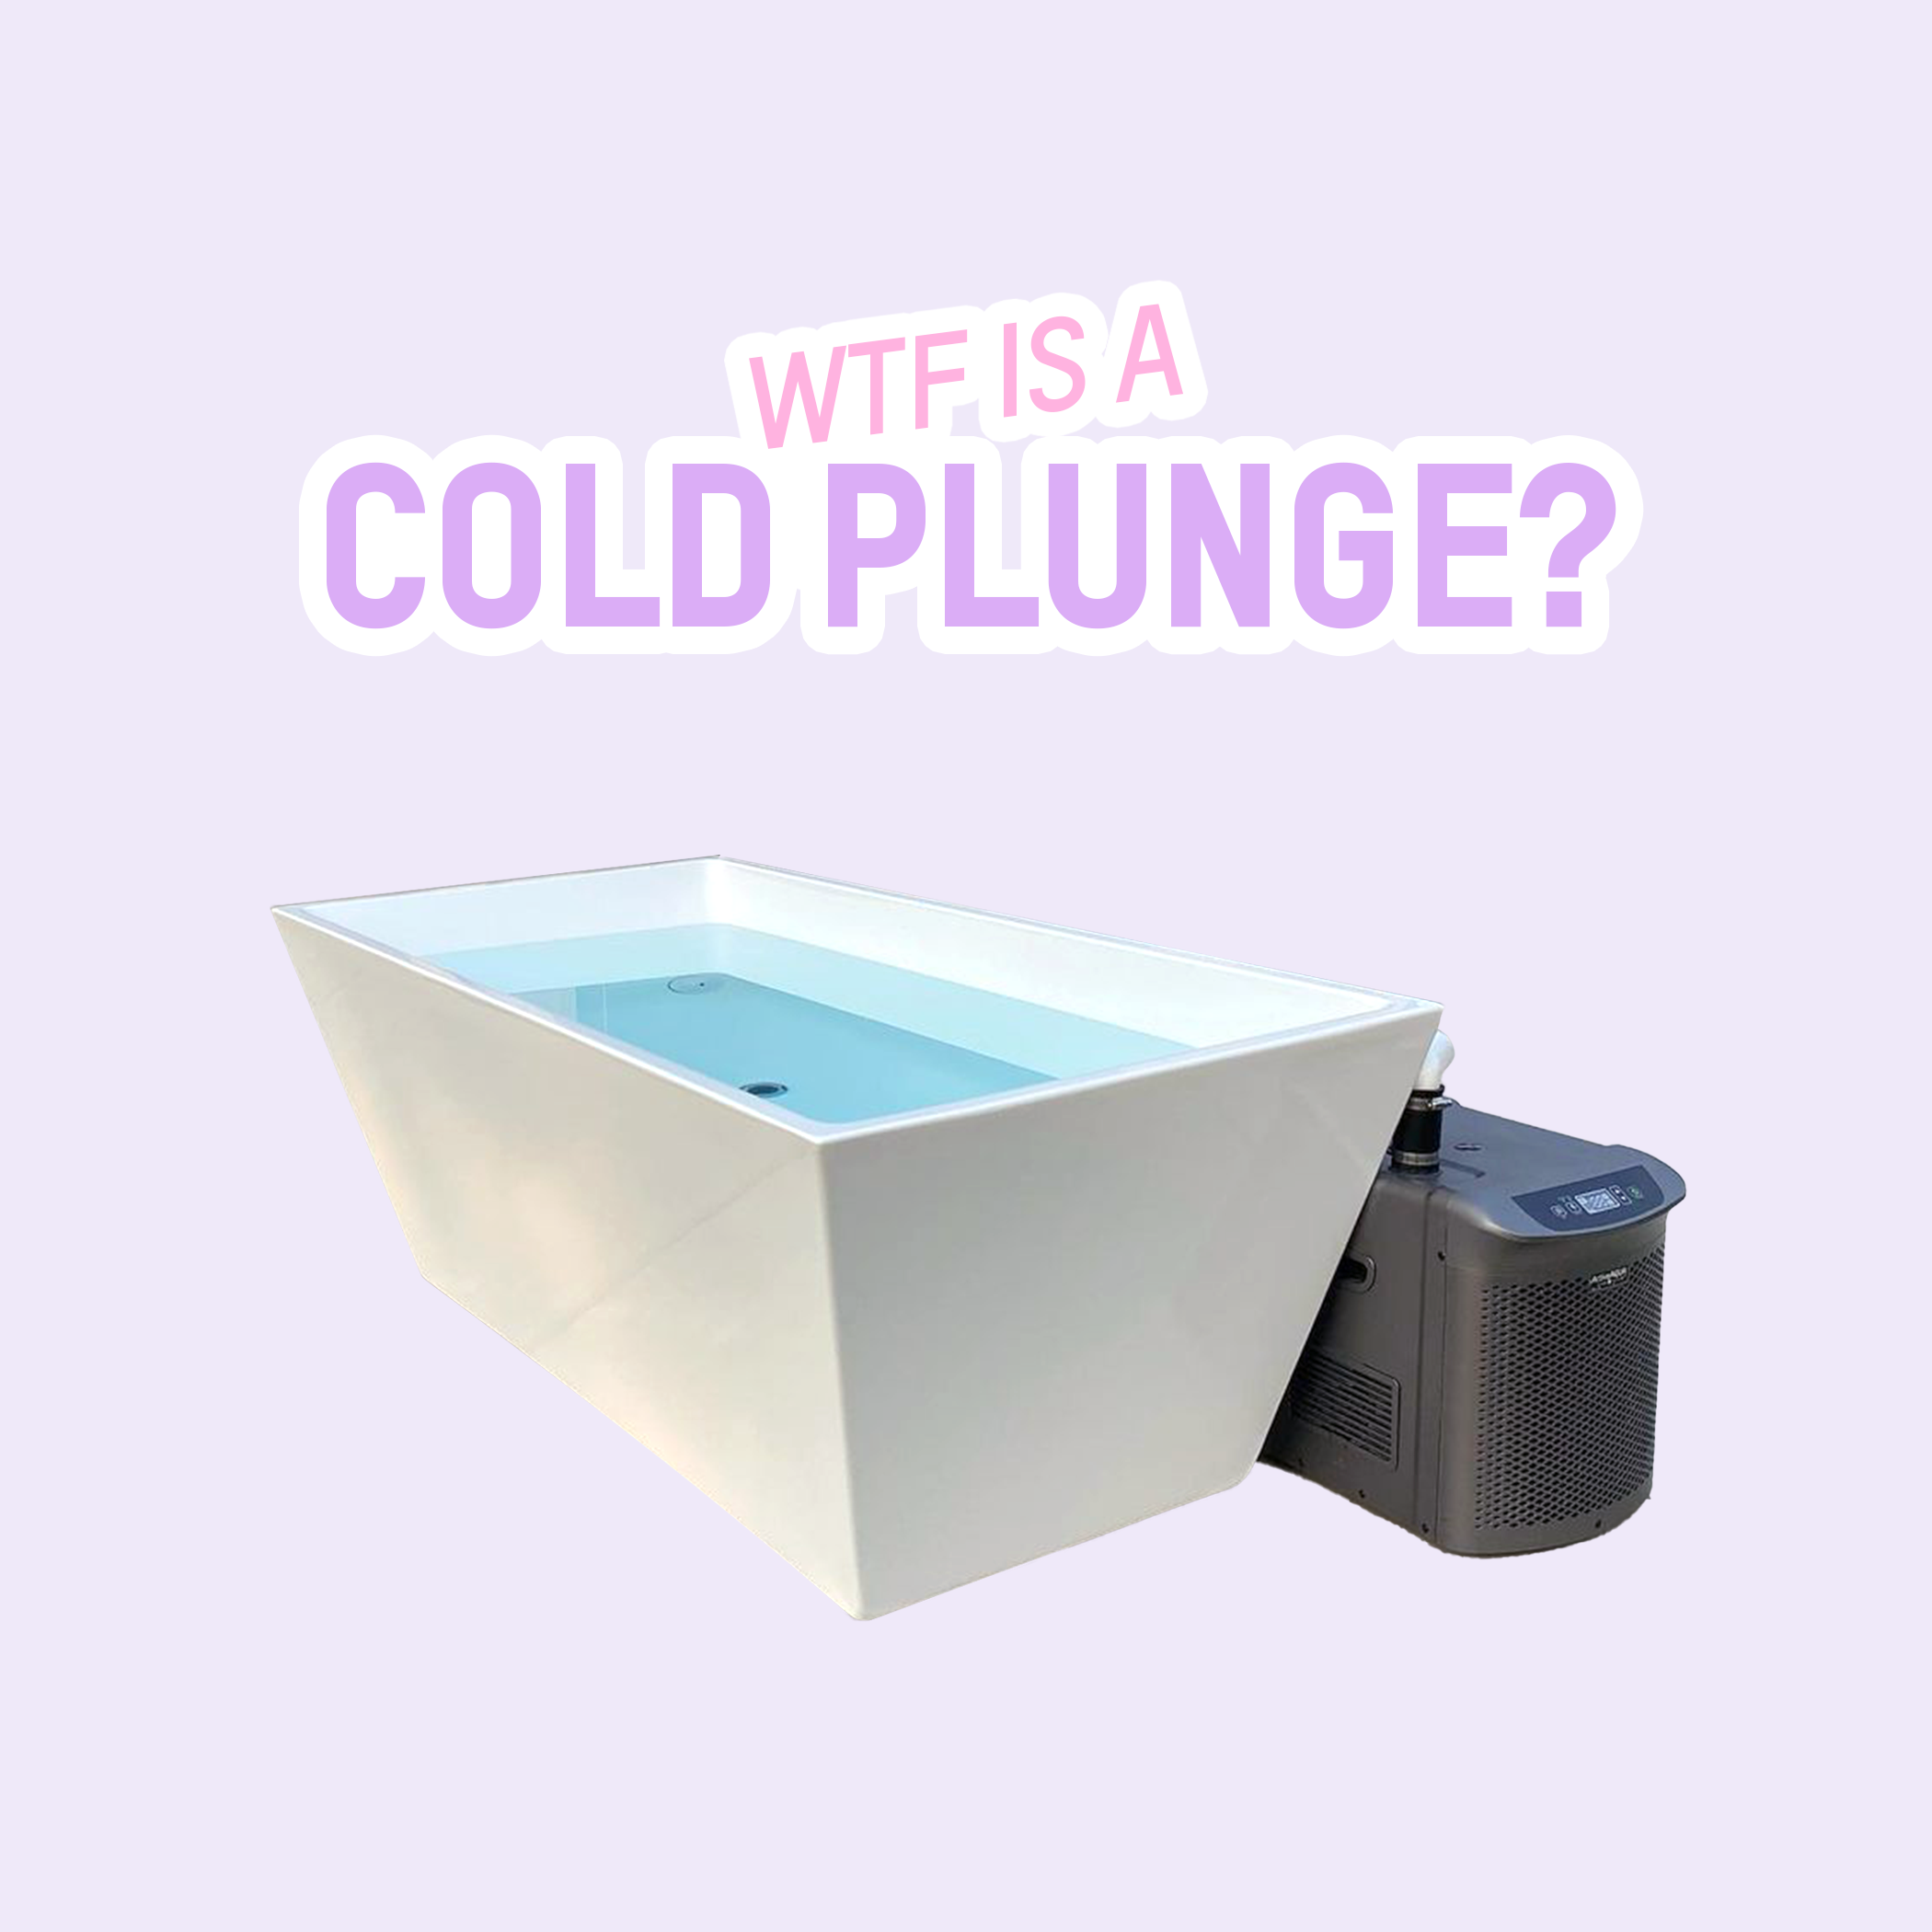 WTF Is a Cold Plunge?